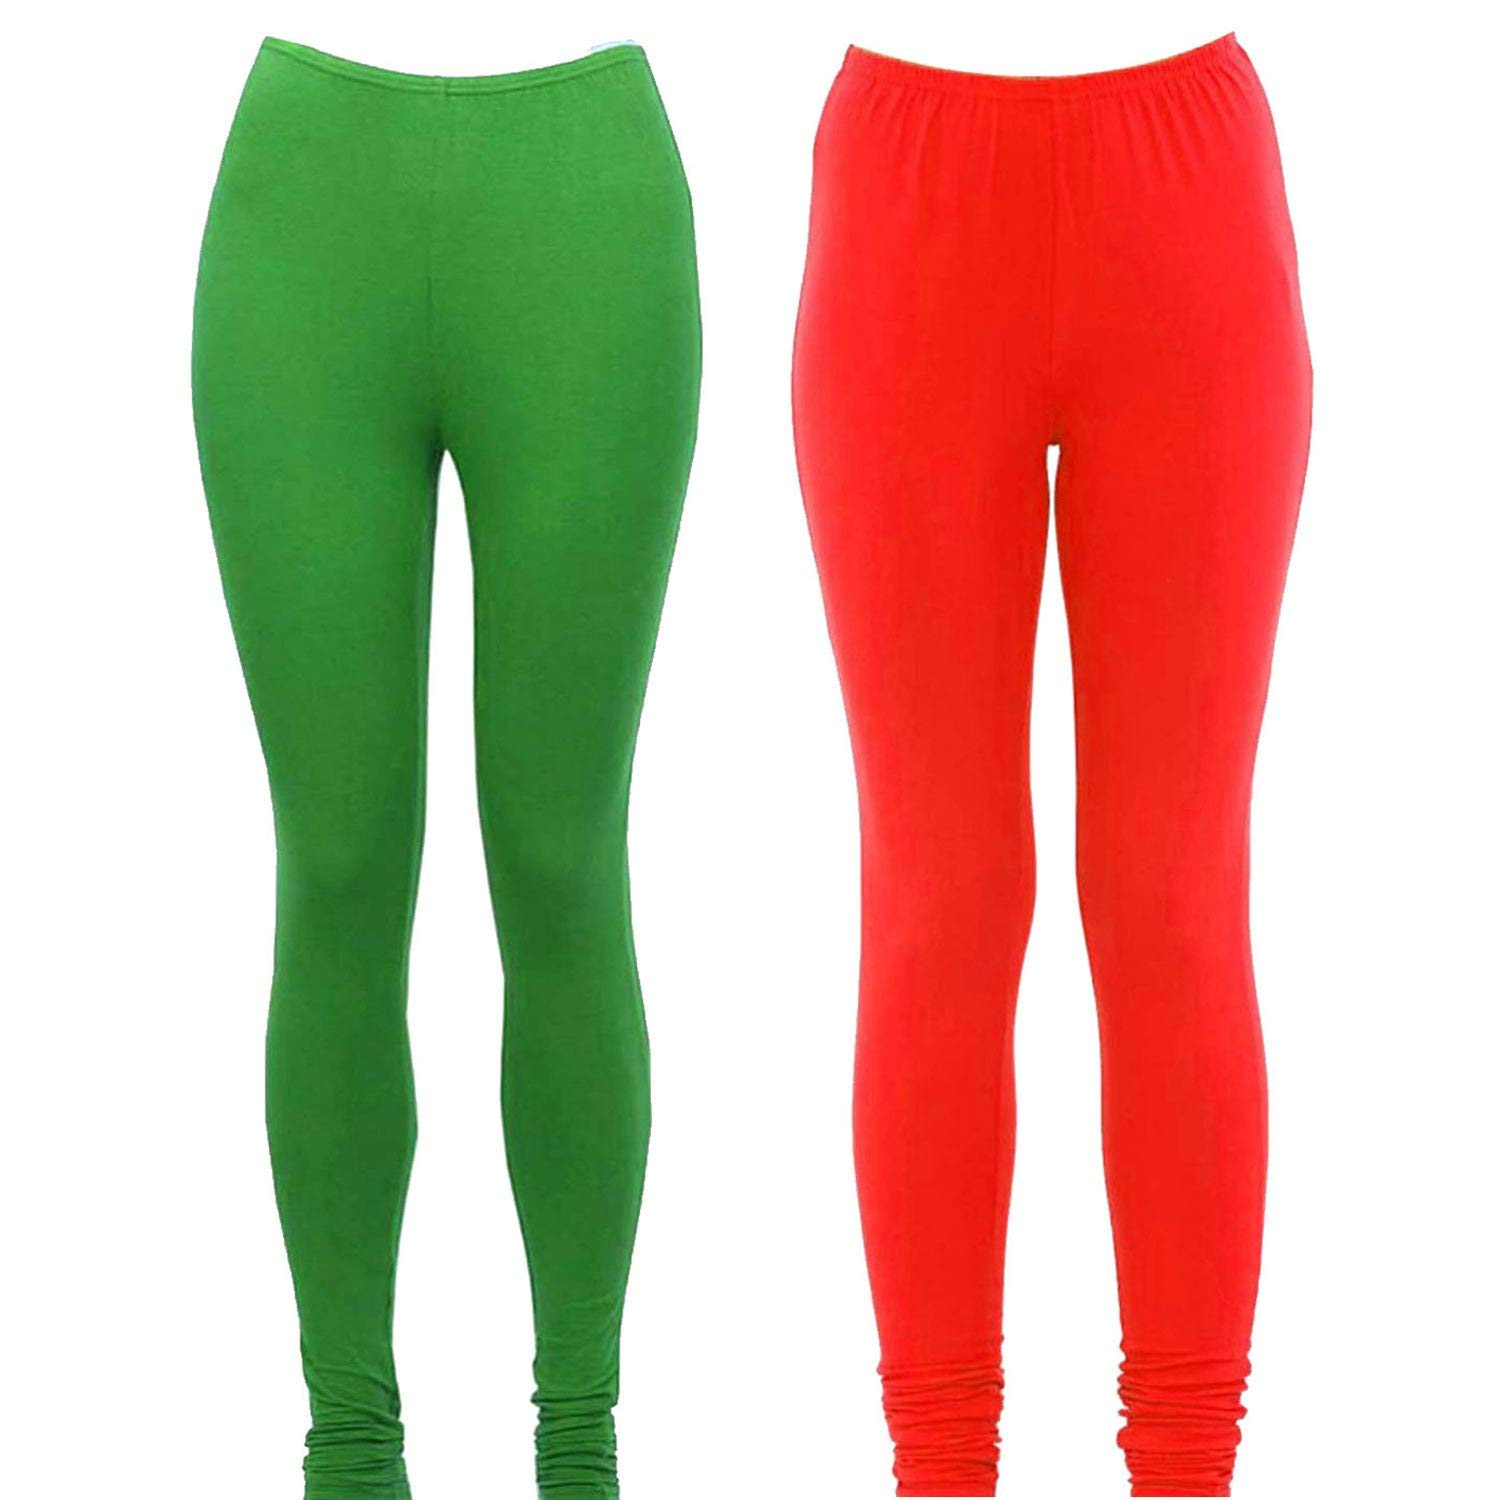 3687887a0cee1 Get Quotations · Designer Solid Lycra Fabric Full Length Soft Stretchable  Womens Green and Red Set of 2 Legging